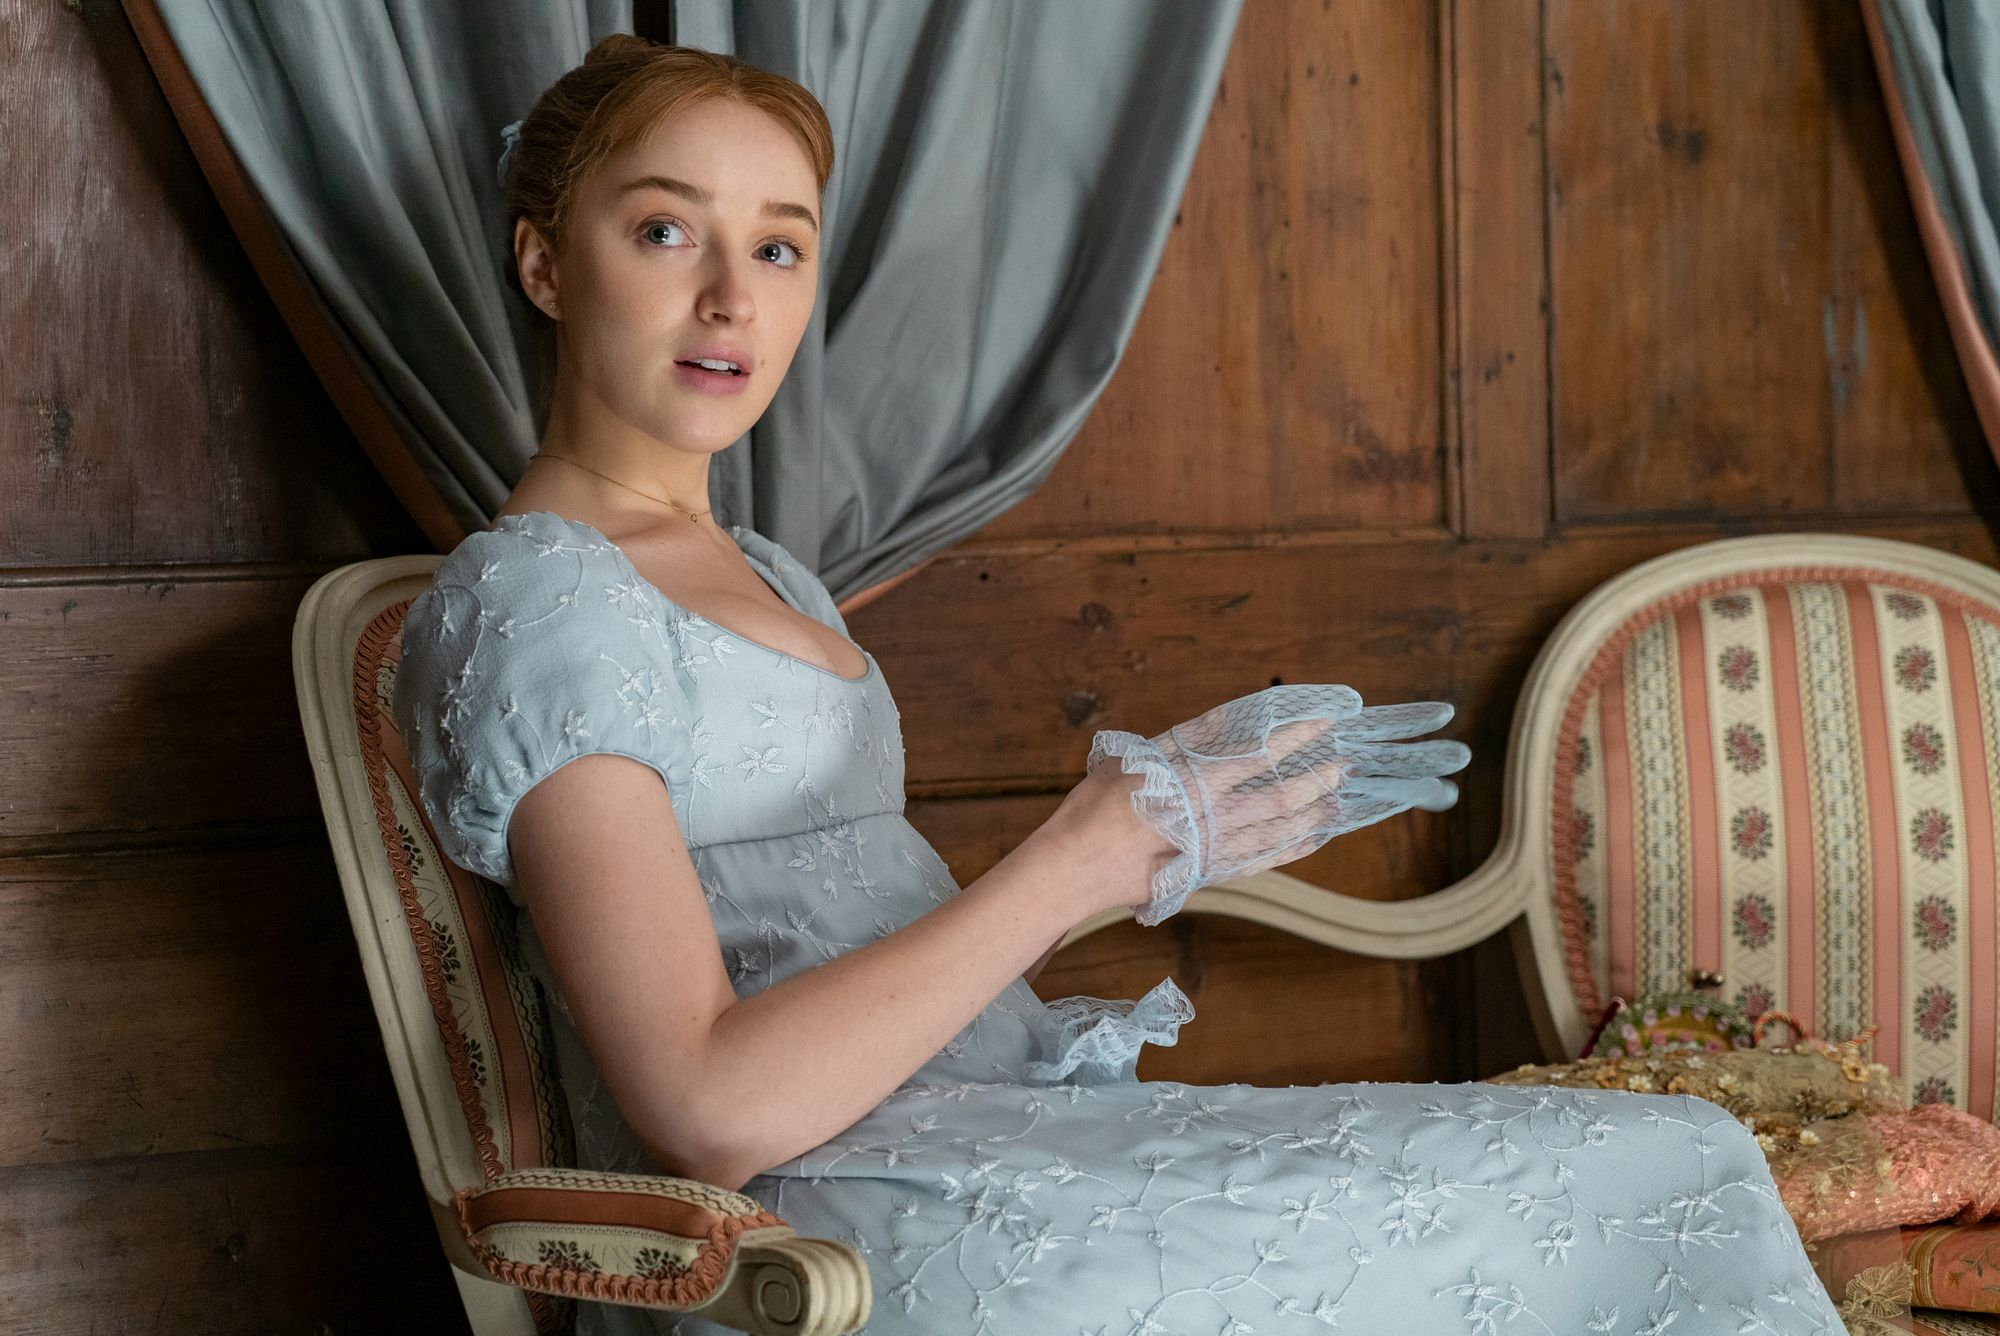 Leading actress Phoebe Dynevor is said to be devastated by the discovery.